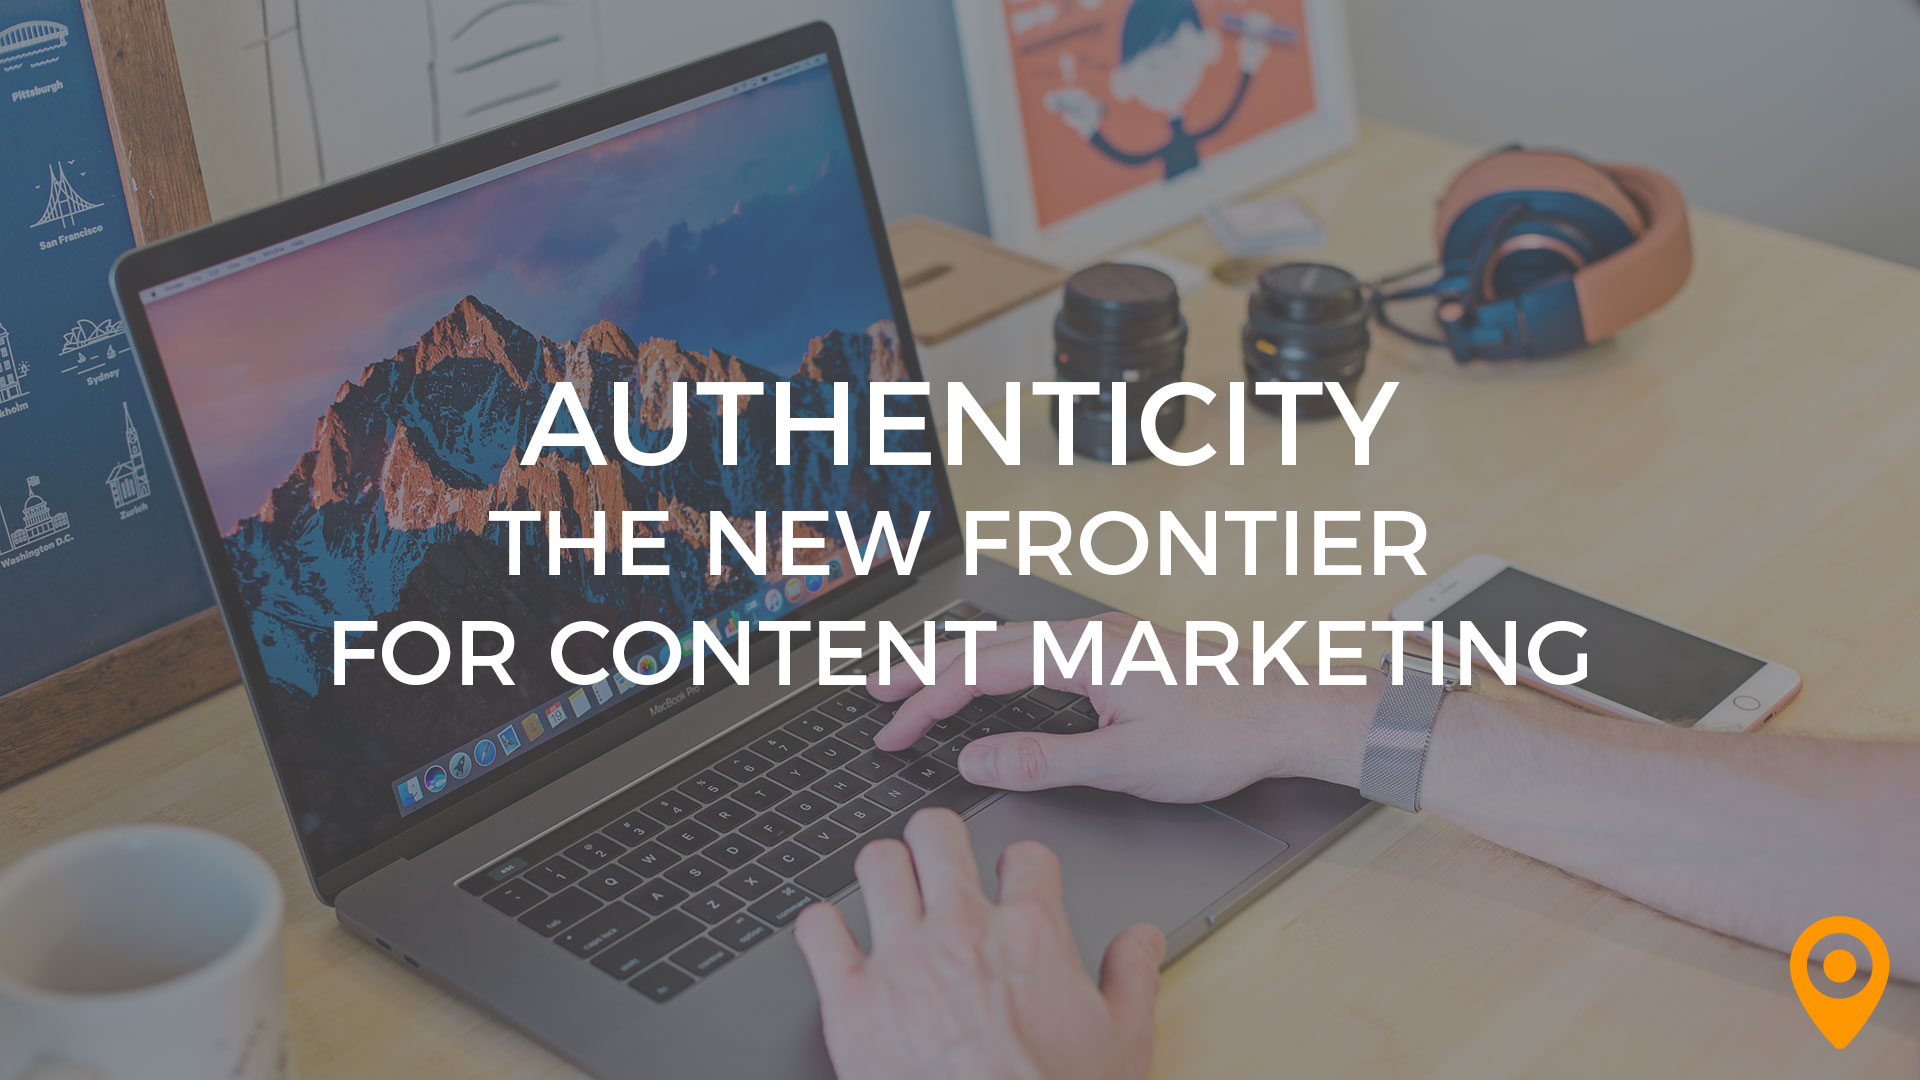 Authenticity the New Frontier for Content Marketing